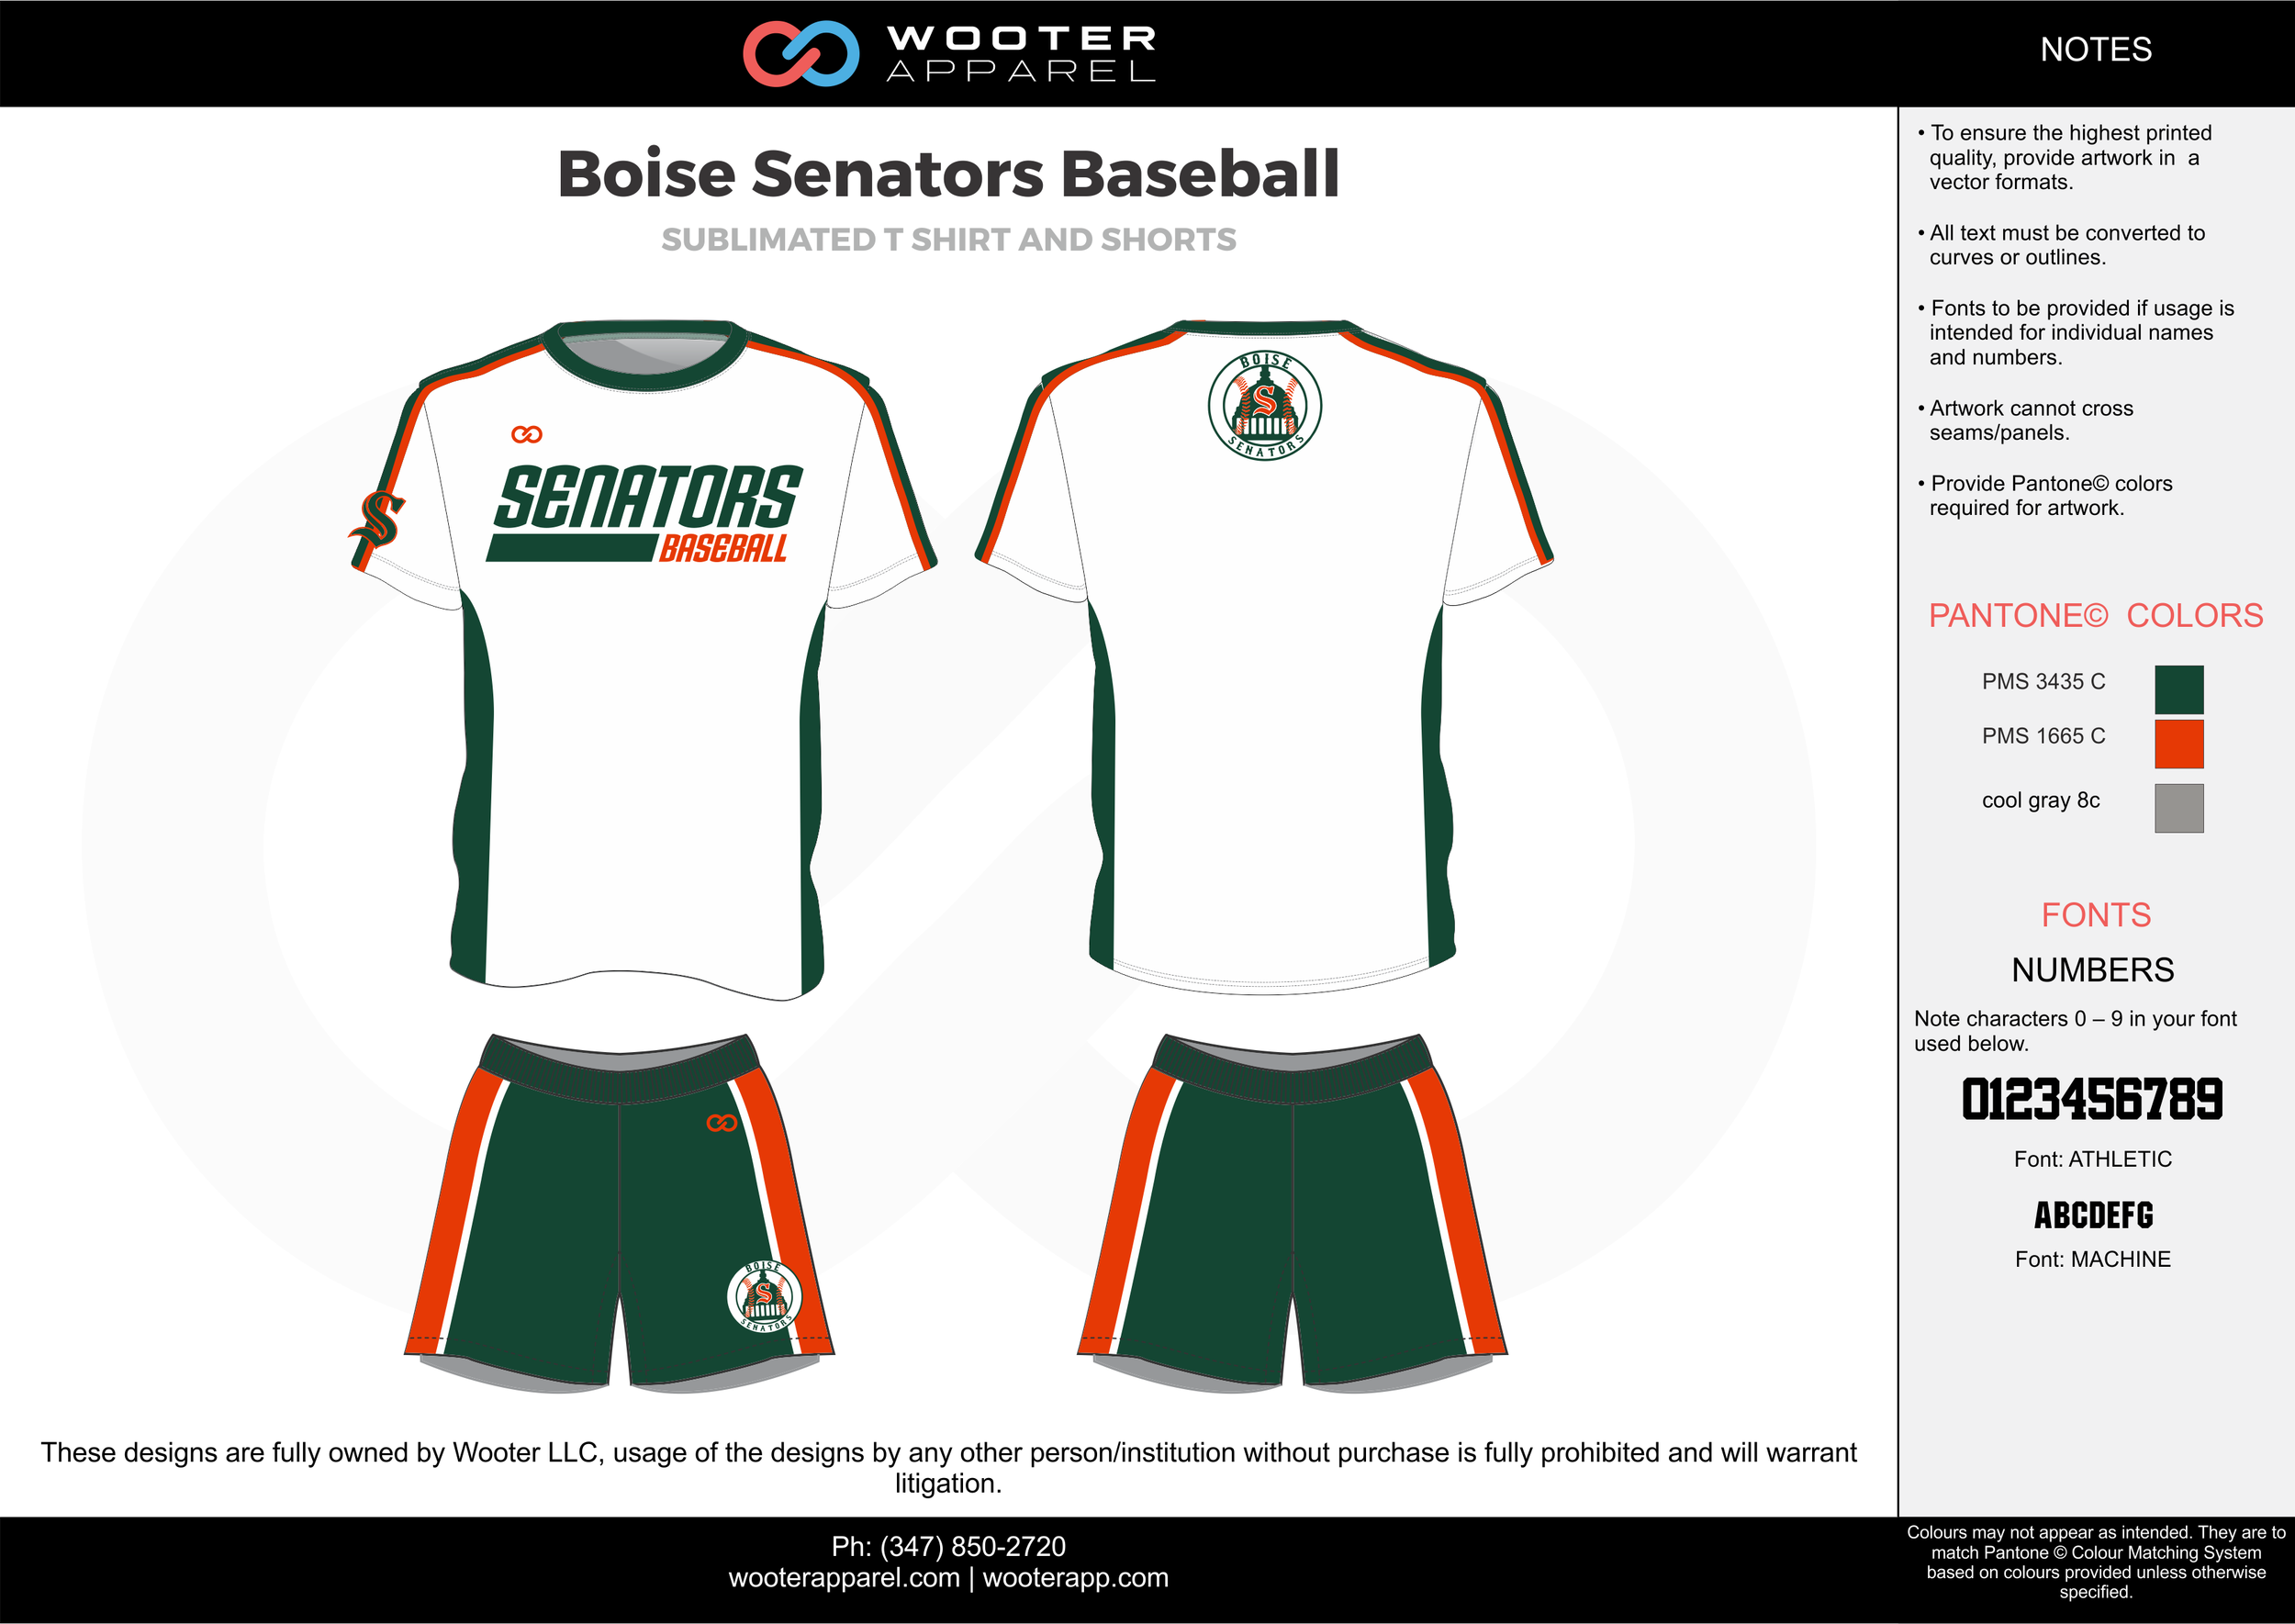 BOISE SENATORS BASEBALL green white gray baseball uniforms jerseys shorts